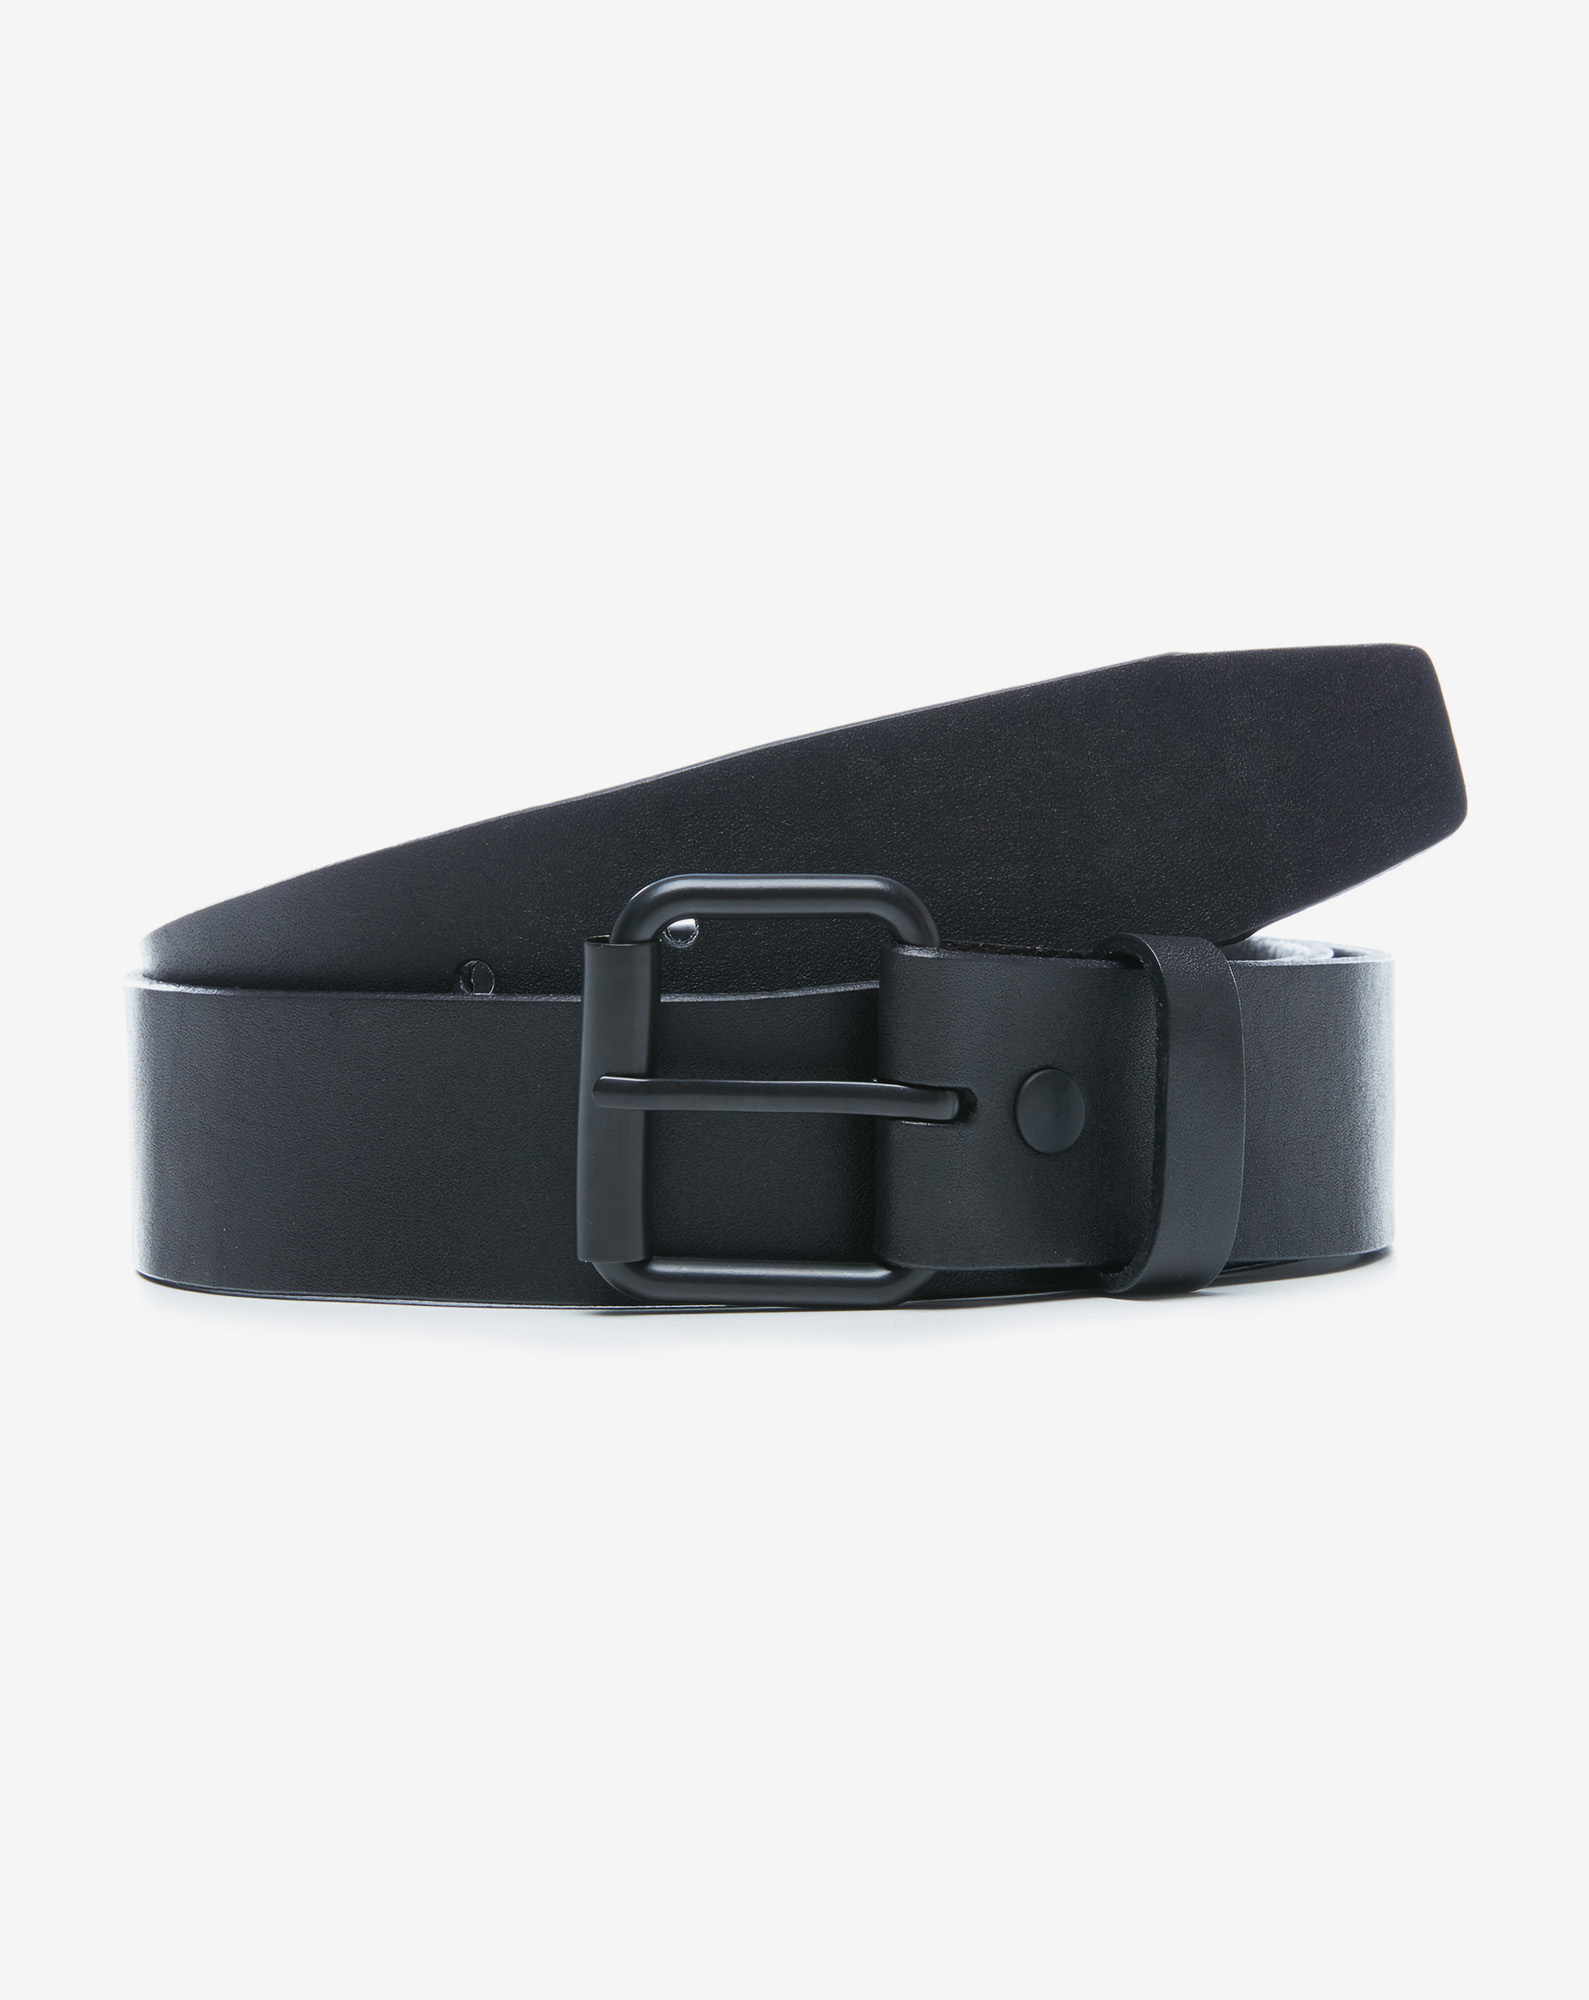 MN BUCKDEN II BELT Black